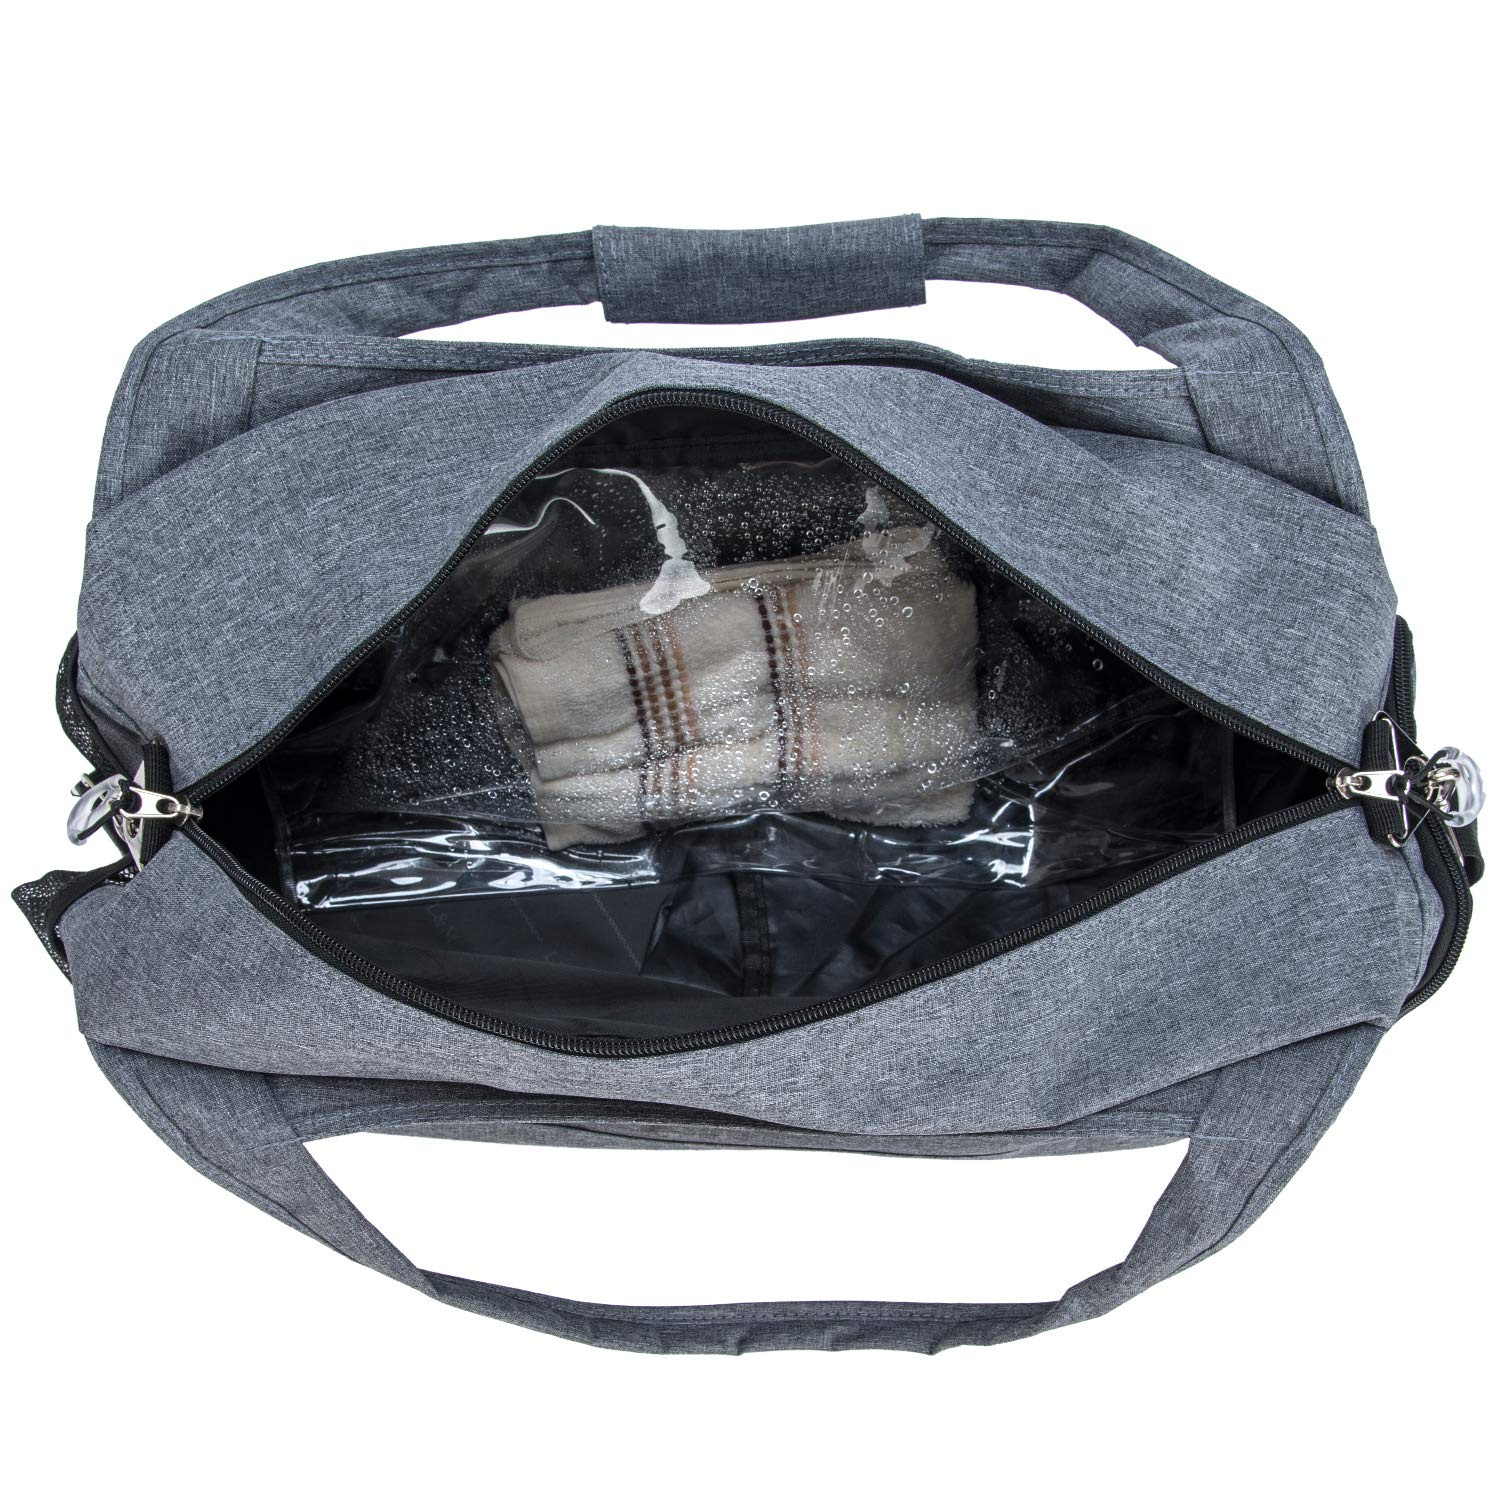 4d054aeaf70f Kuston Sports Gym Bag with Shoes Compartment Travel Duffel Bag for Men &  Women